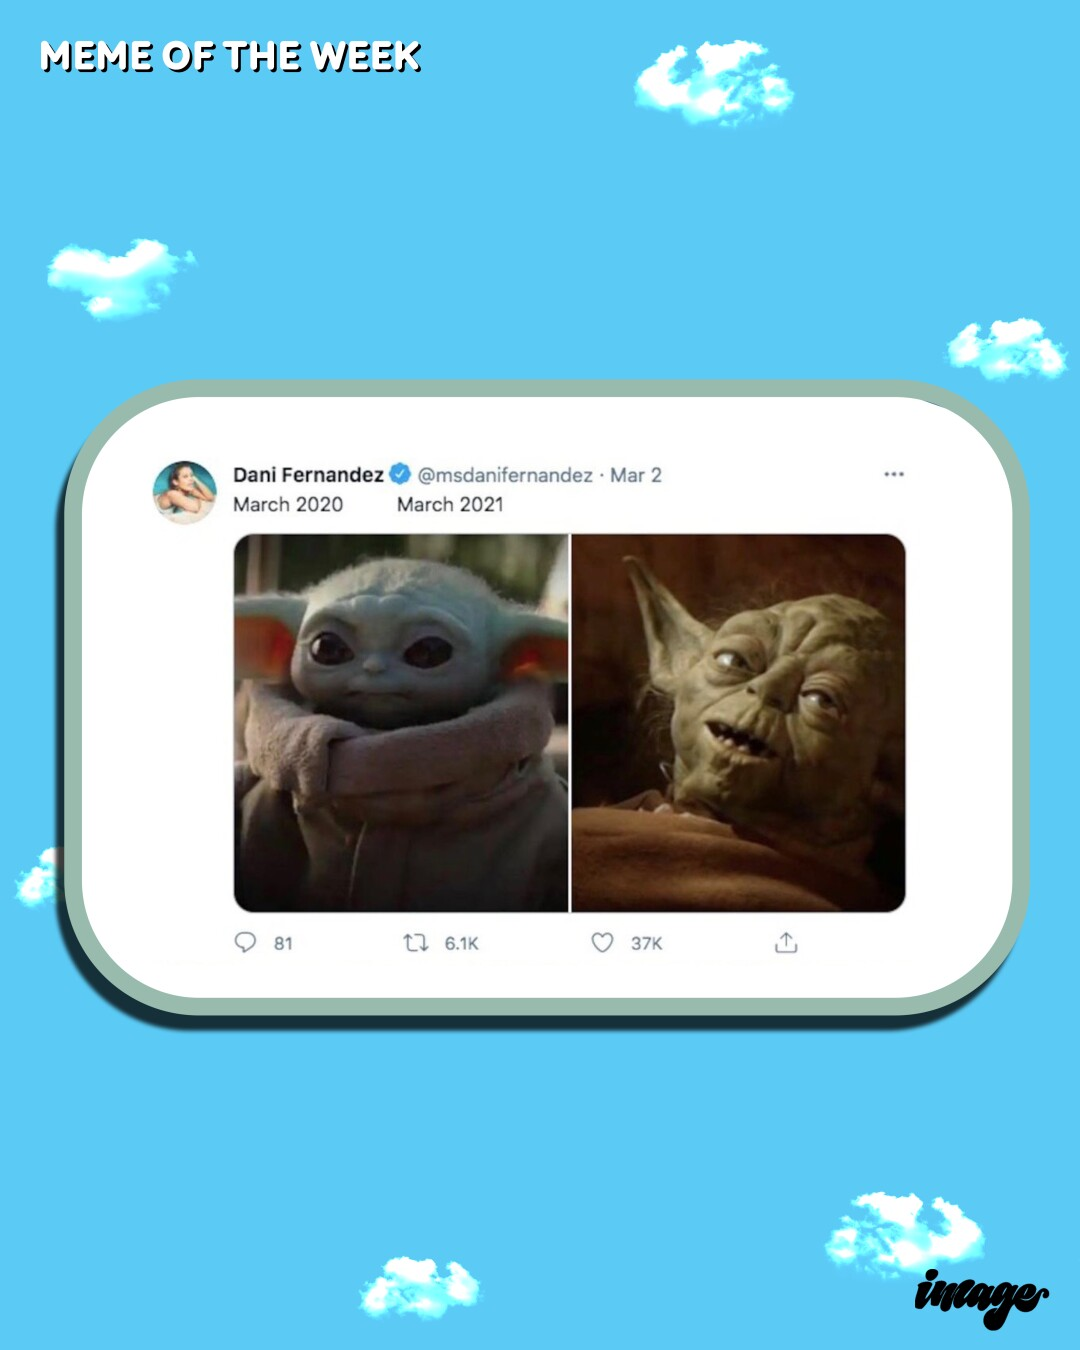 Side-by-side photos of Baby Yoda and Yoda in a meme on a cellphone